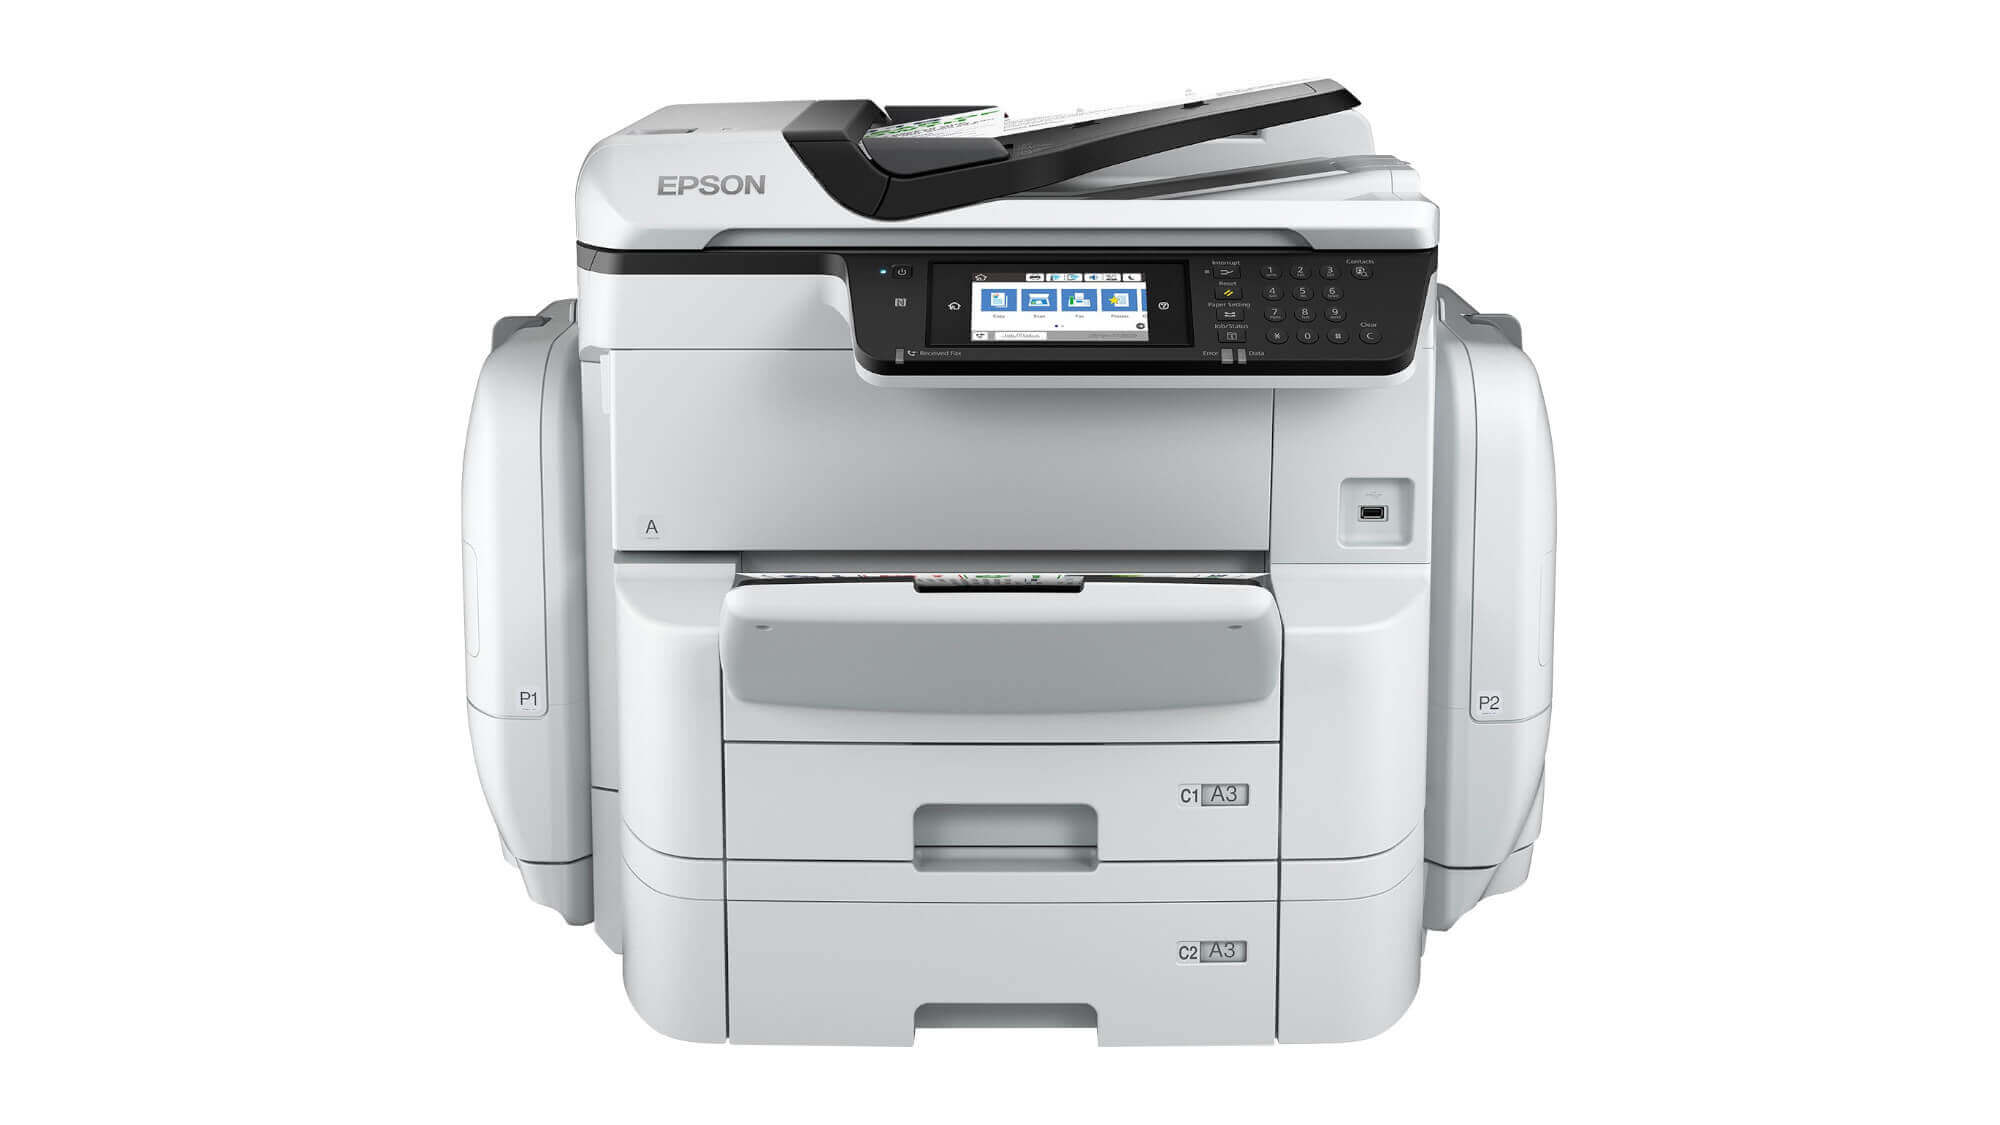 Epson A3 Colour Printer Desktop version